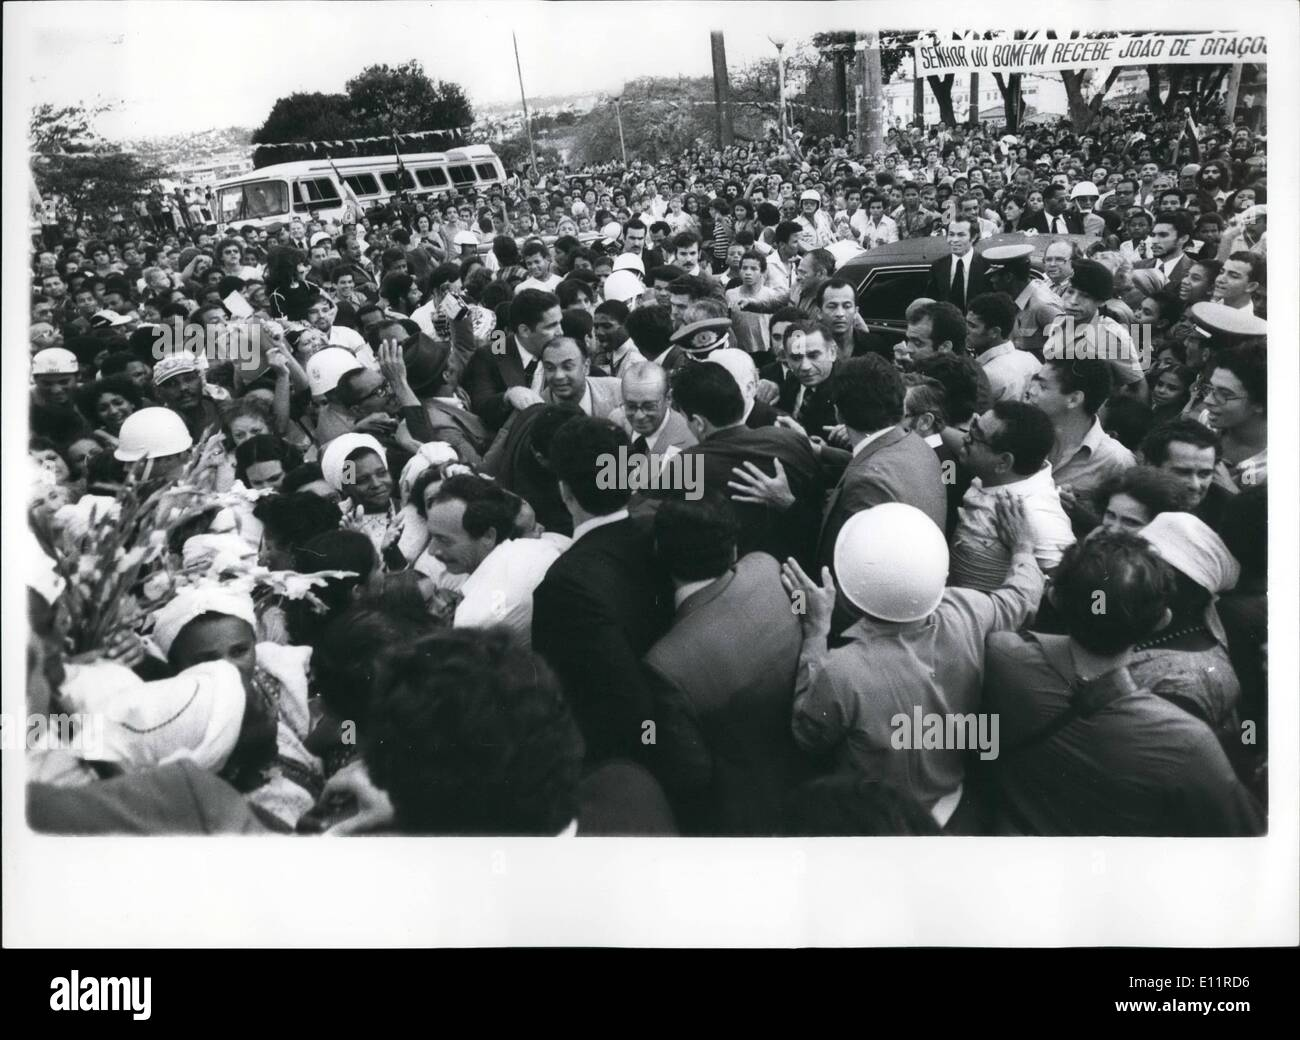 Oct. 10, 1979 - Figurines in Crowd in Salvador, Capital of State of Bahia. - Stock Image